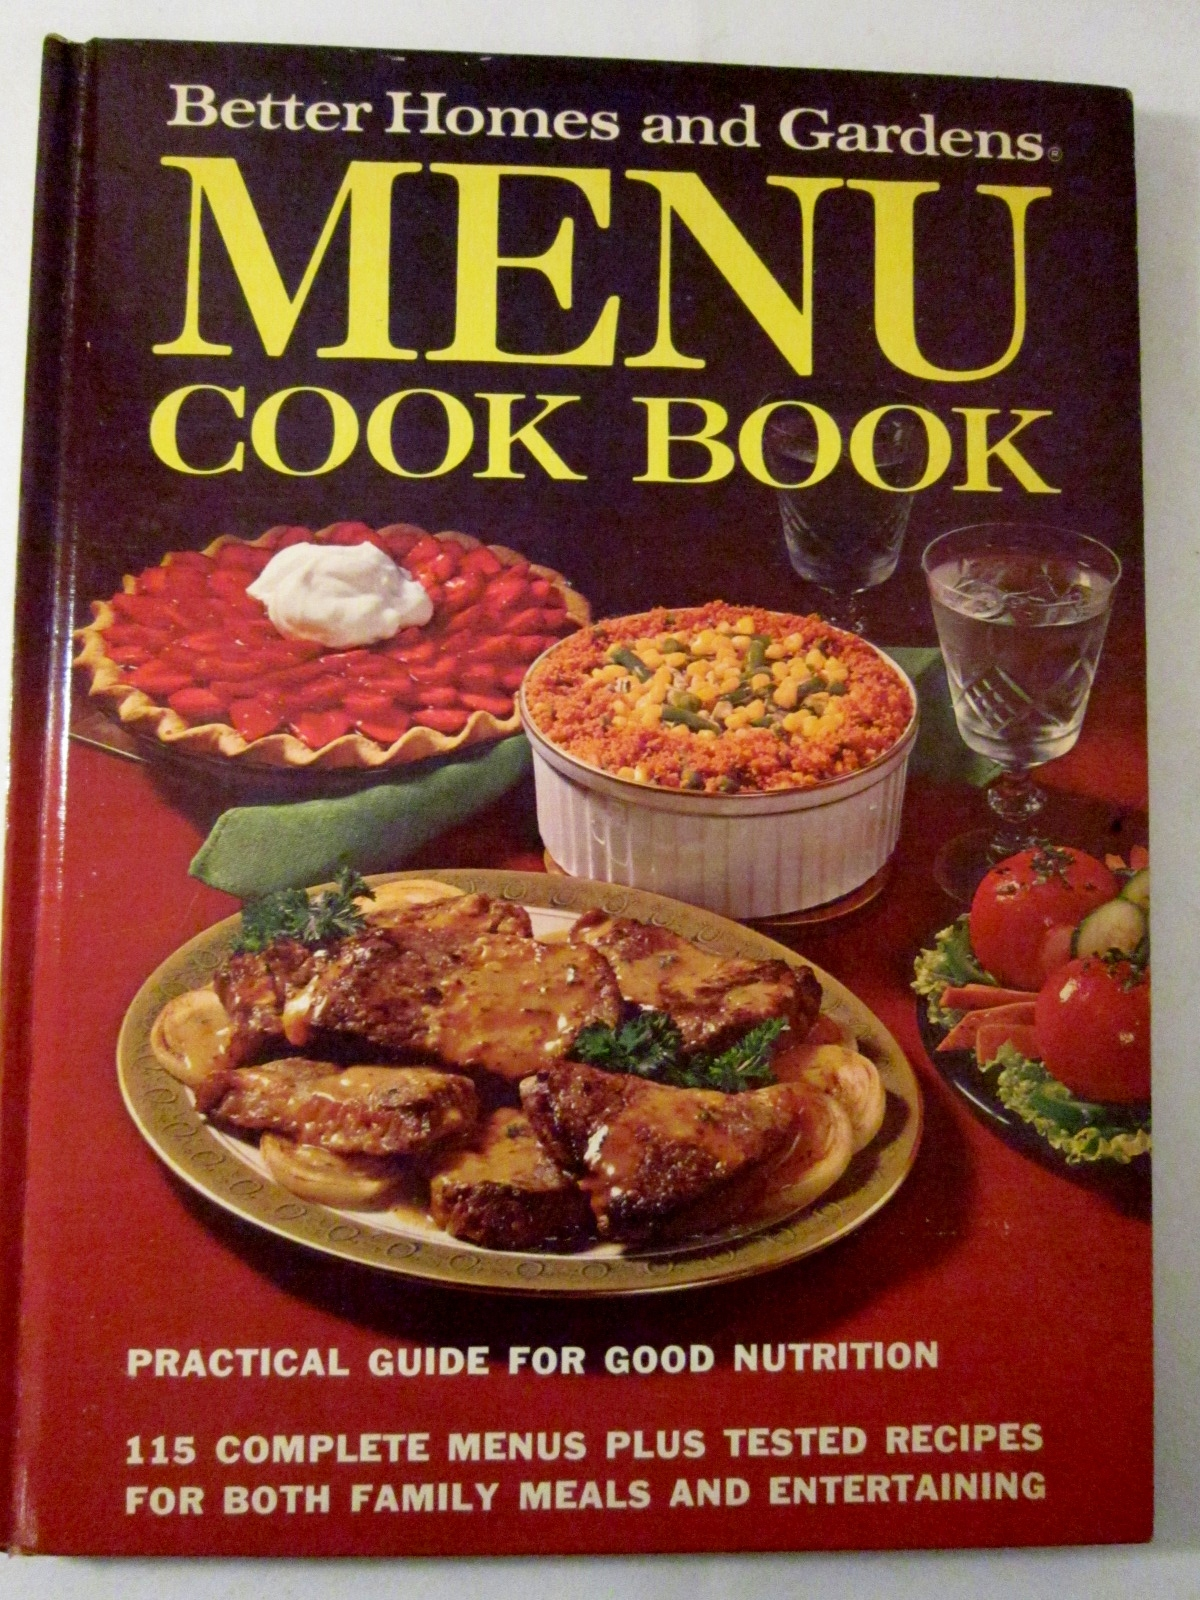 Menu Cook Book 1972 Better Homes And Gardens First Edition Hardcover Cookbooks